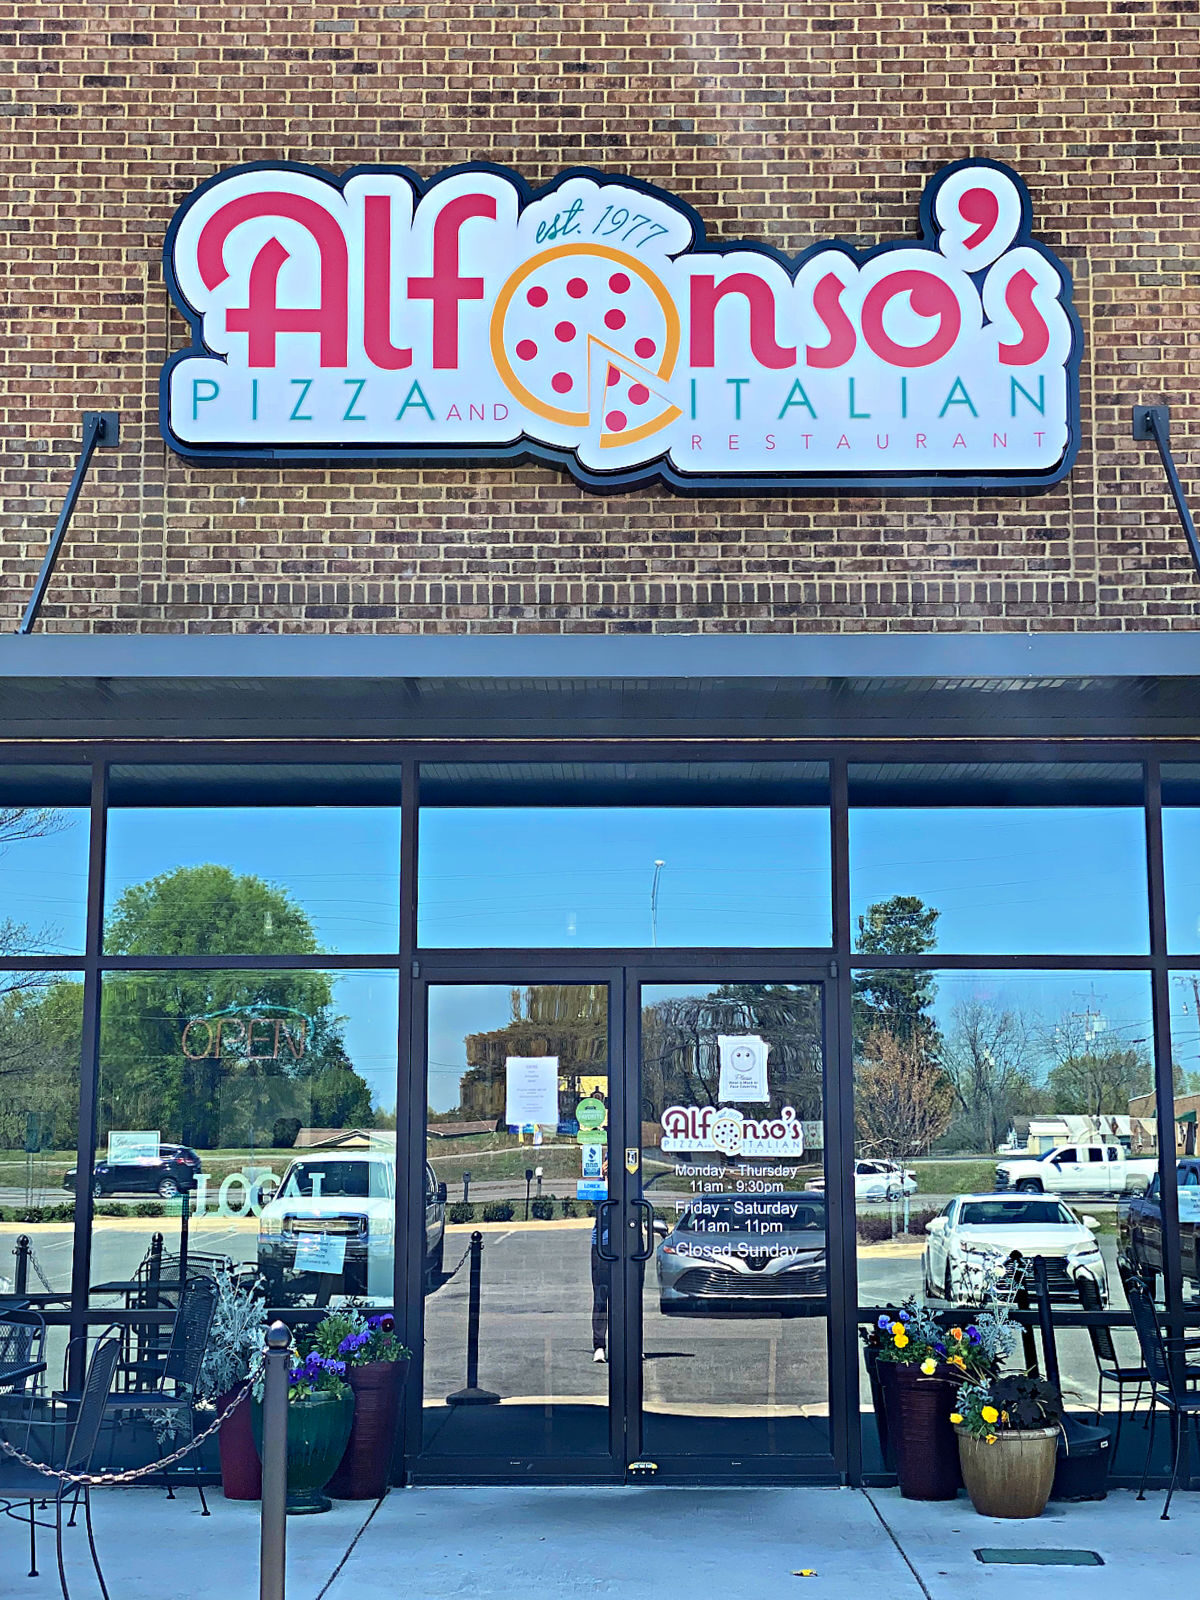 Alfonso's Pizza and Italian Restaurant front entrance.